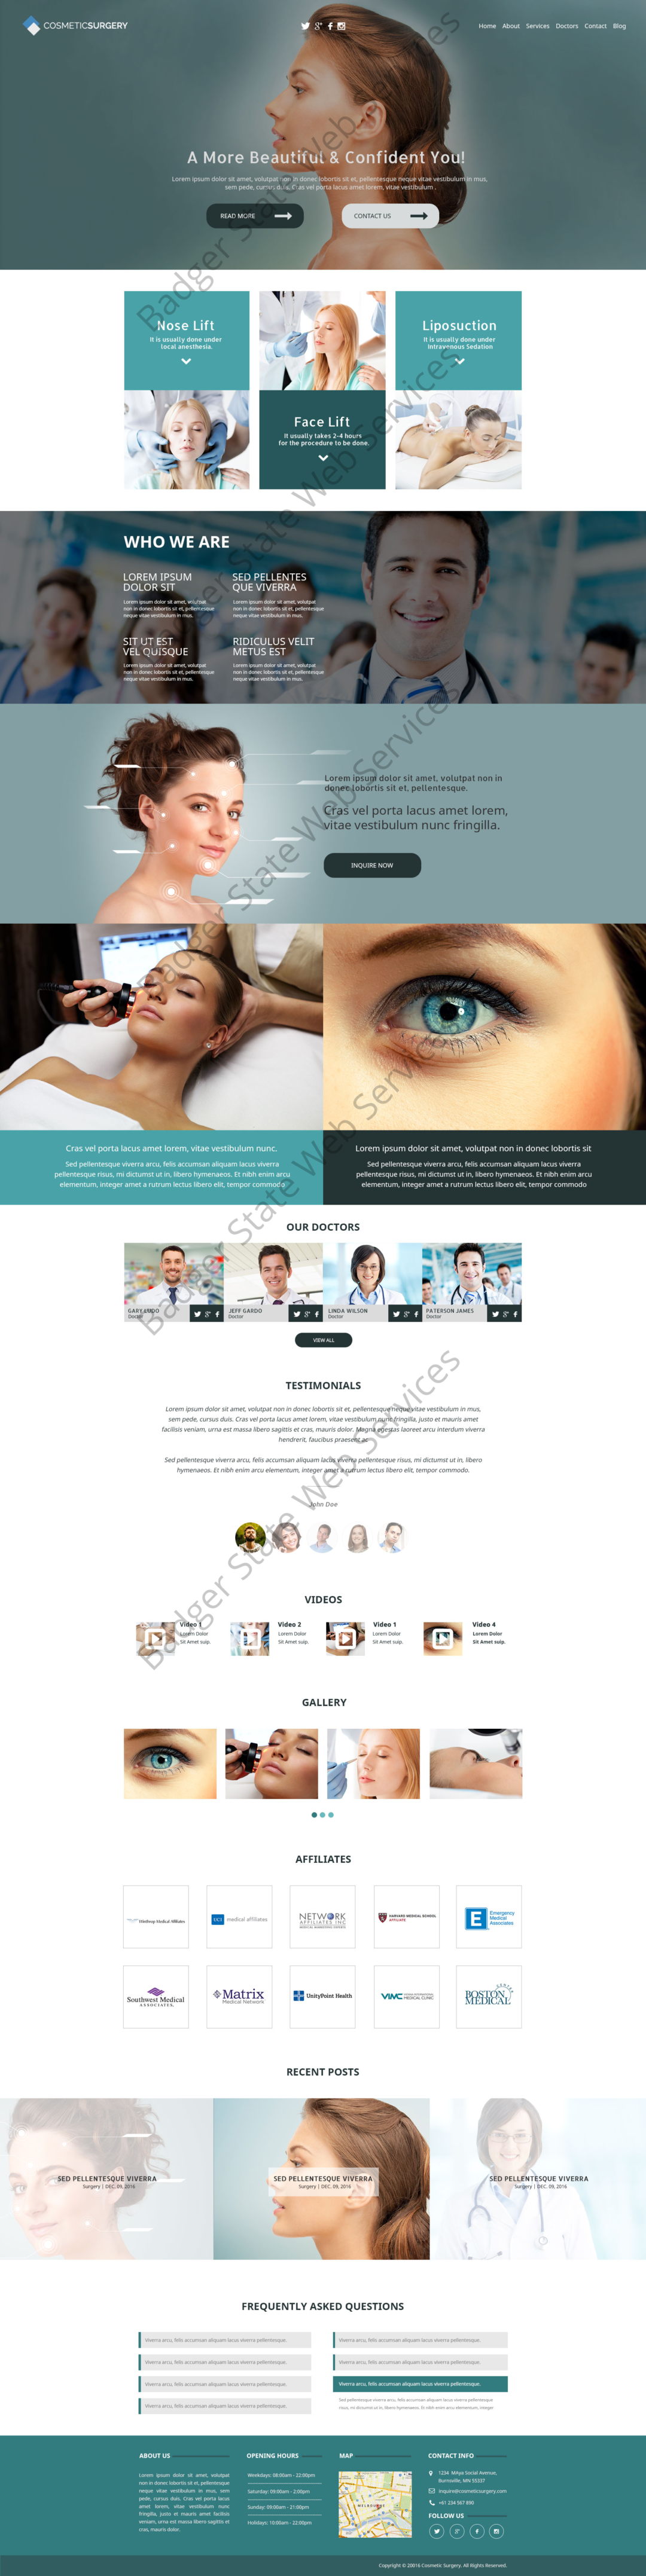 Cosmetic Web Design Mockup-G